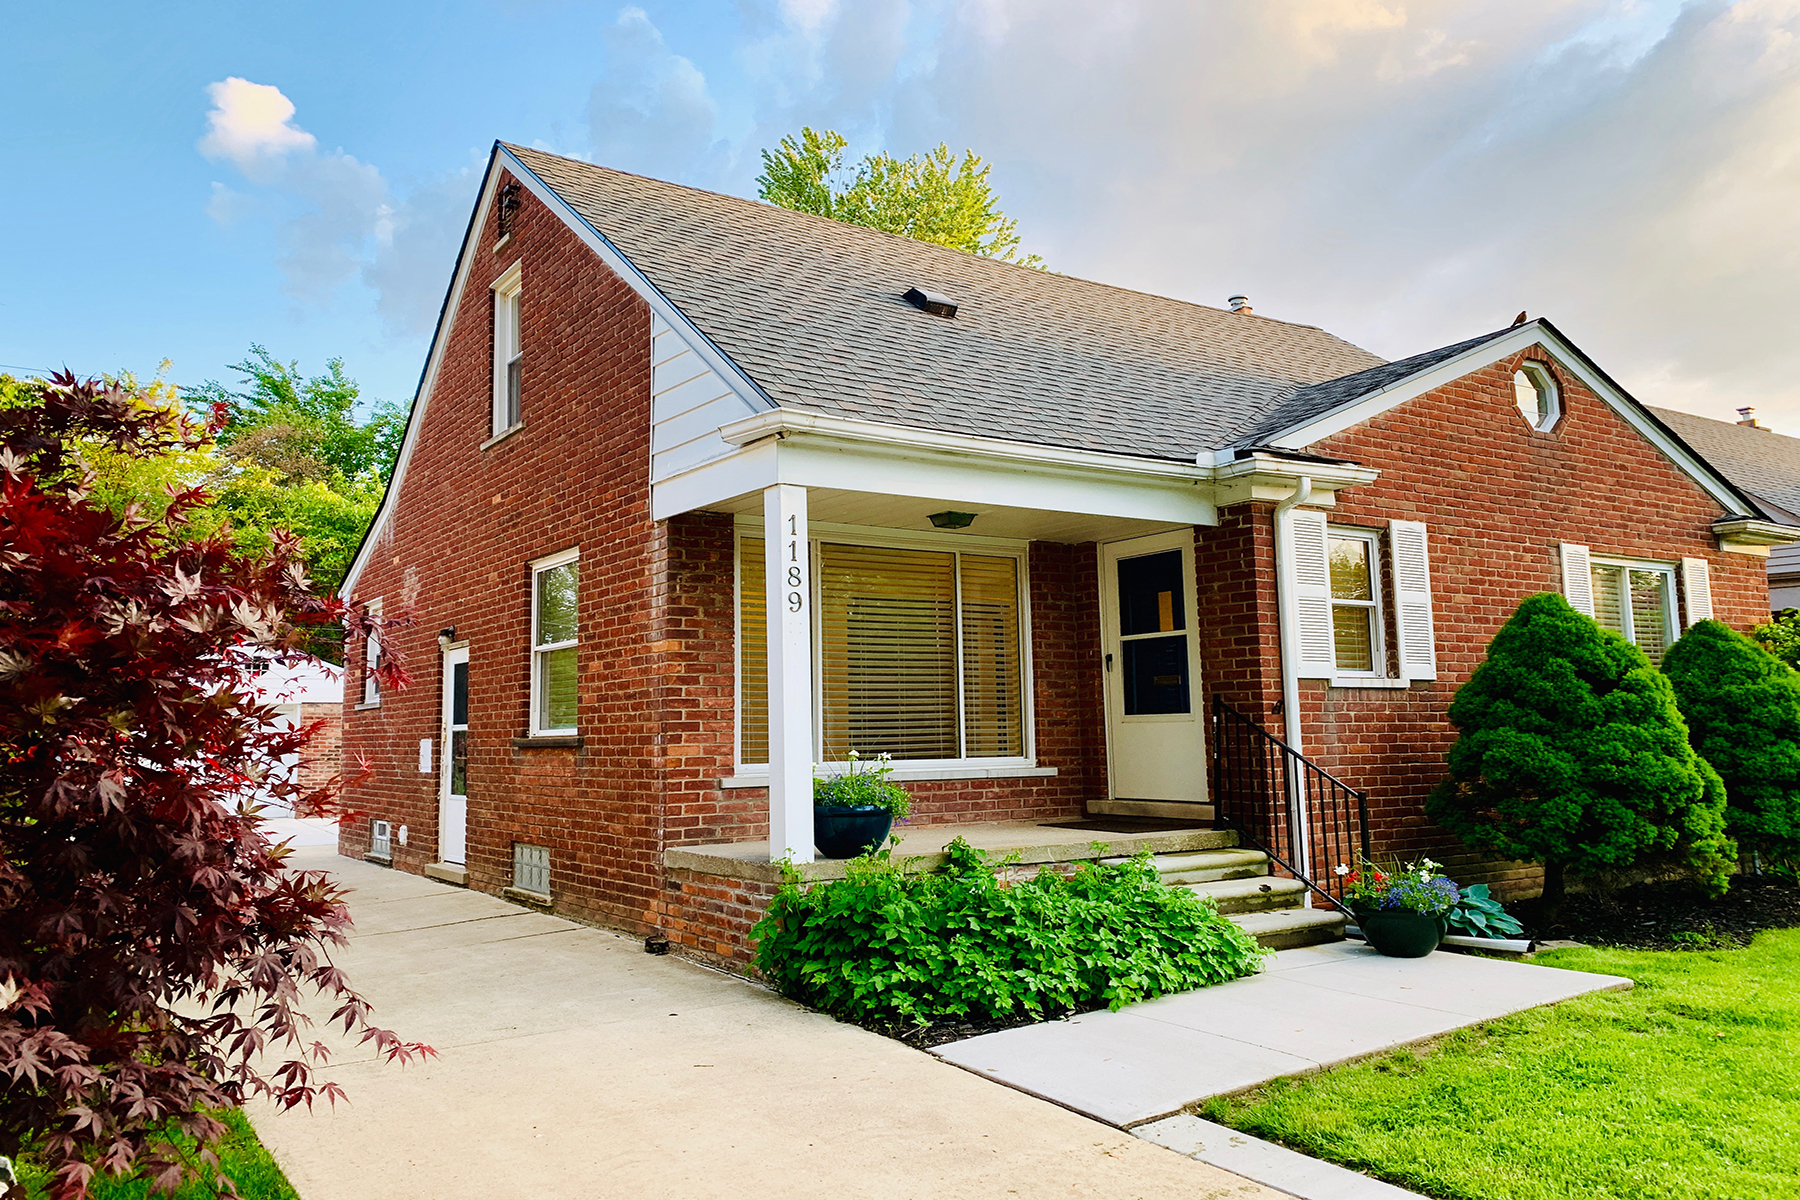 Single Family Homes for Sale at Grosse Pointe Woods 1189 Brys Drive Grosse Pointe Woods, Michigan 48236 United States